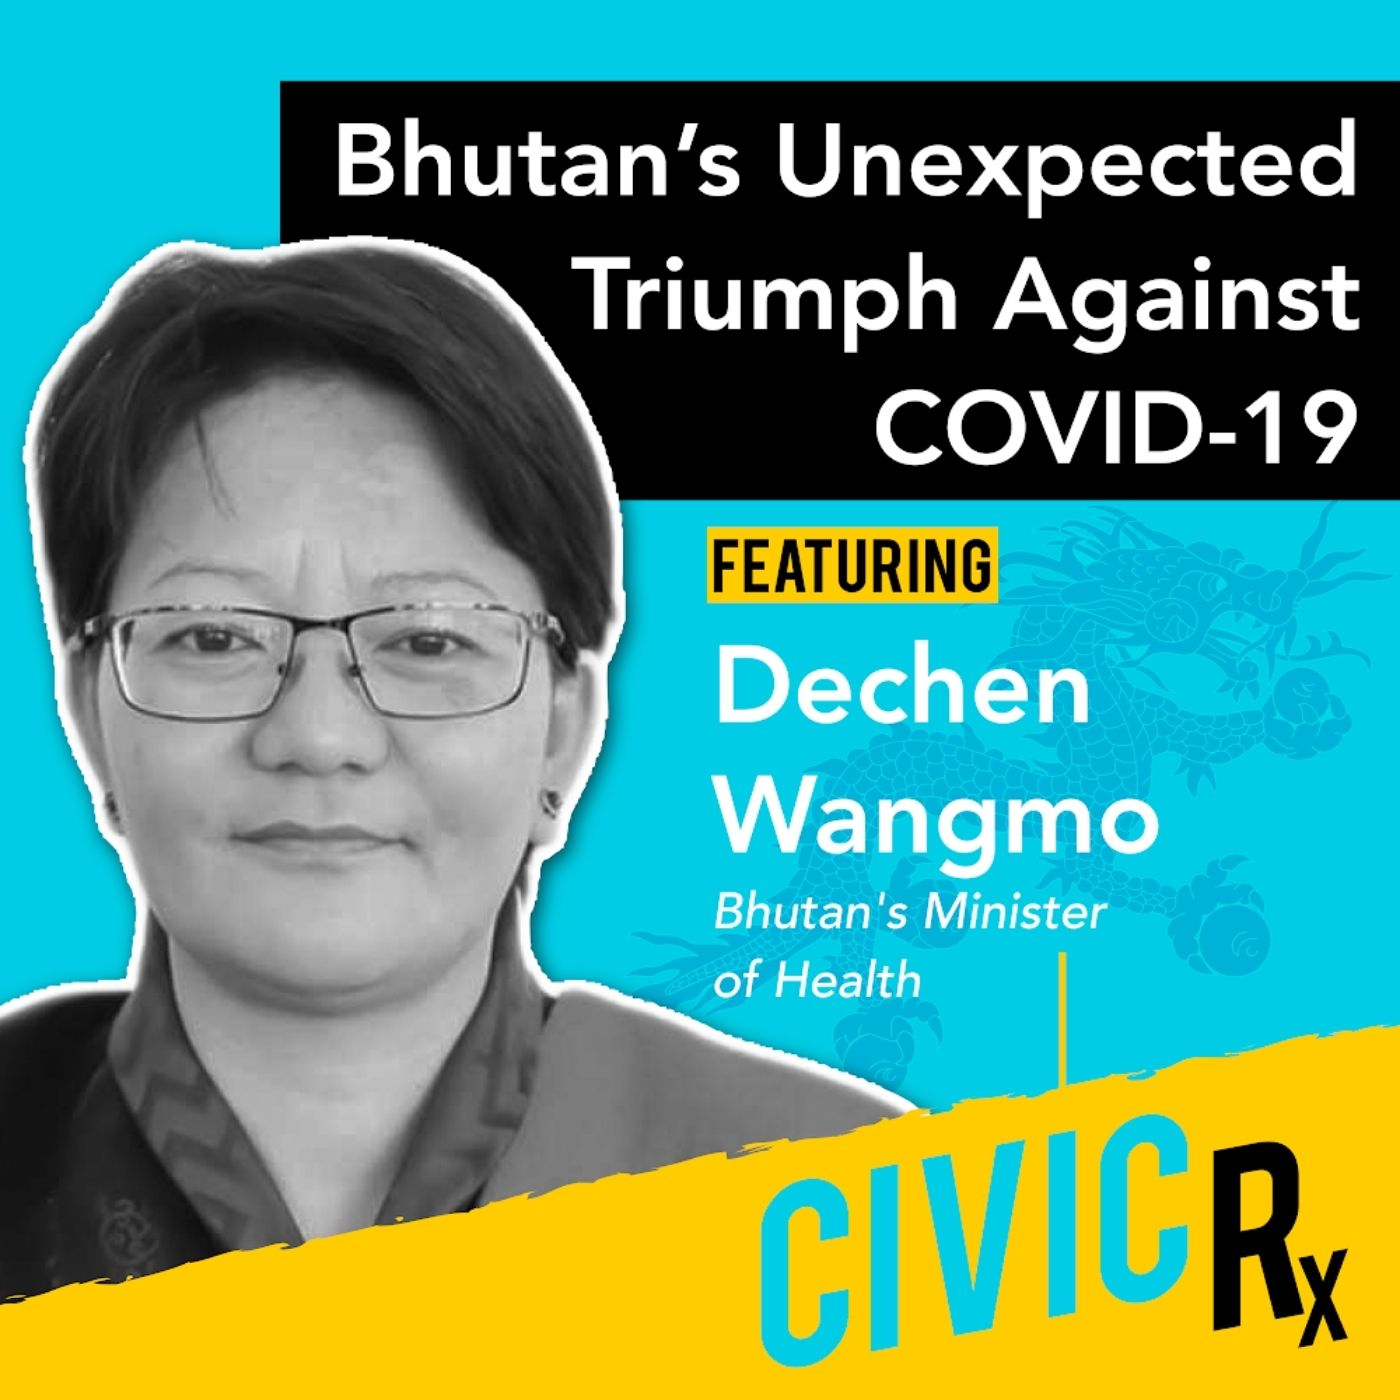 Bhutan's unexpected triumph against COVID-19, with Minister of Health Dechen Wangmo (EP.21)